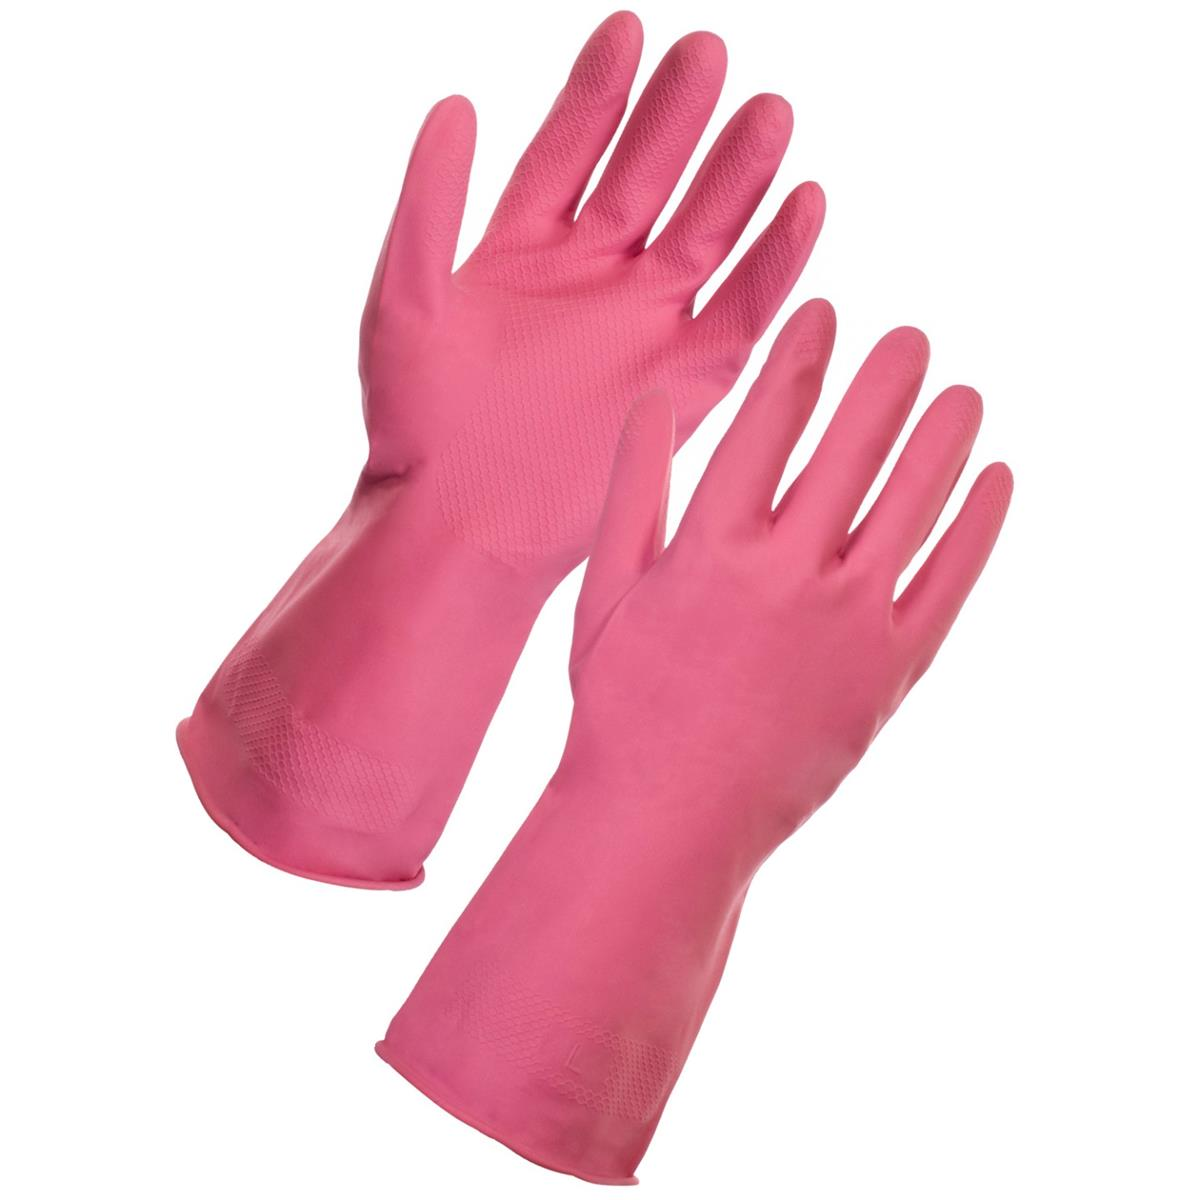 Supertouch Household Latex Gloves Large Pink Ref 13353 [Pair]